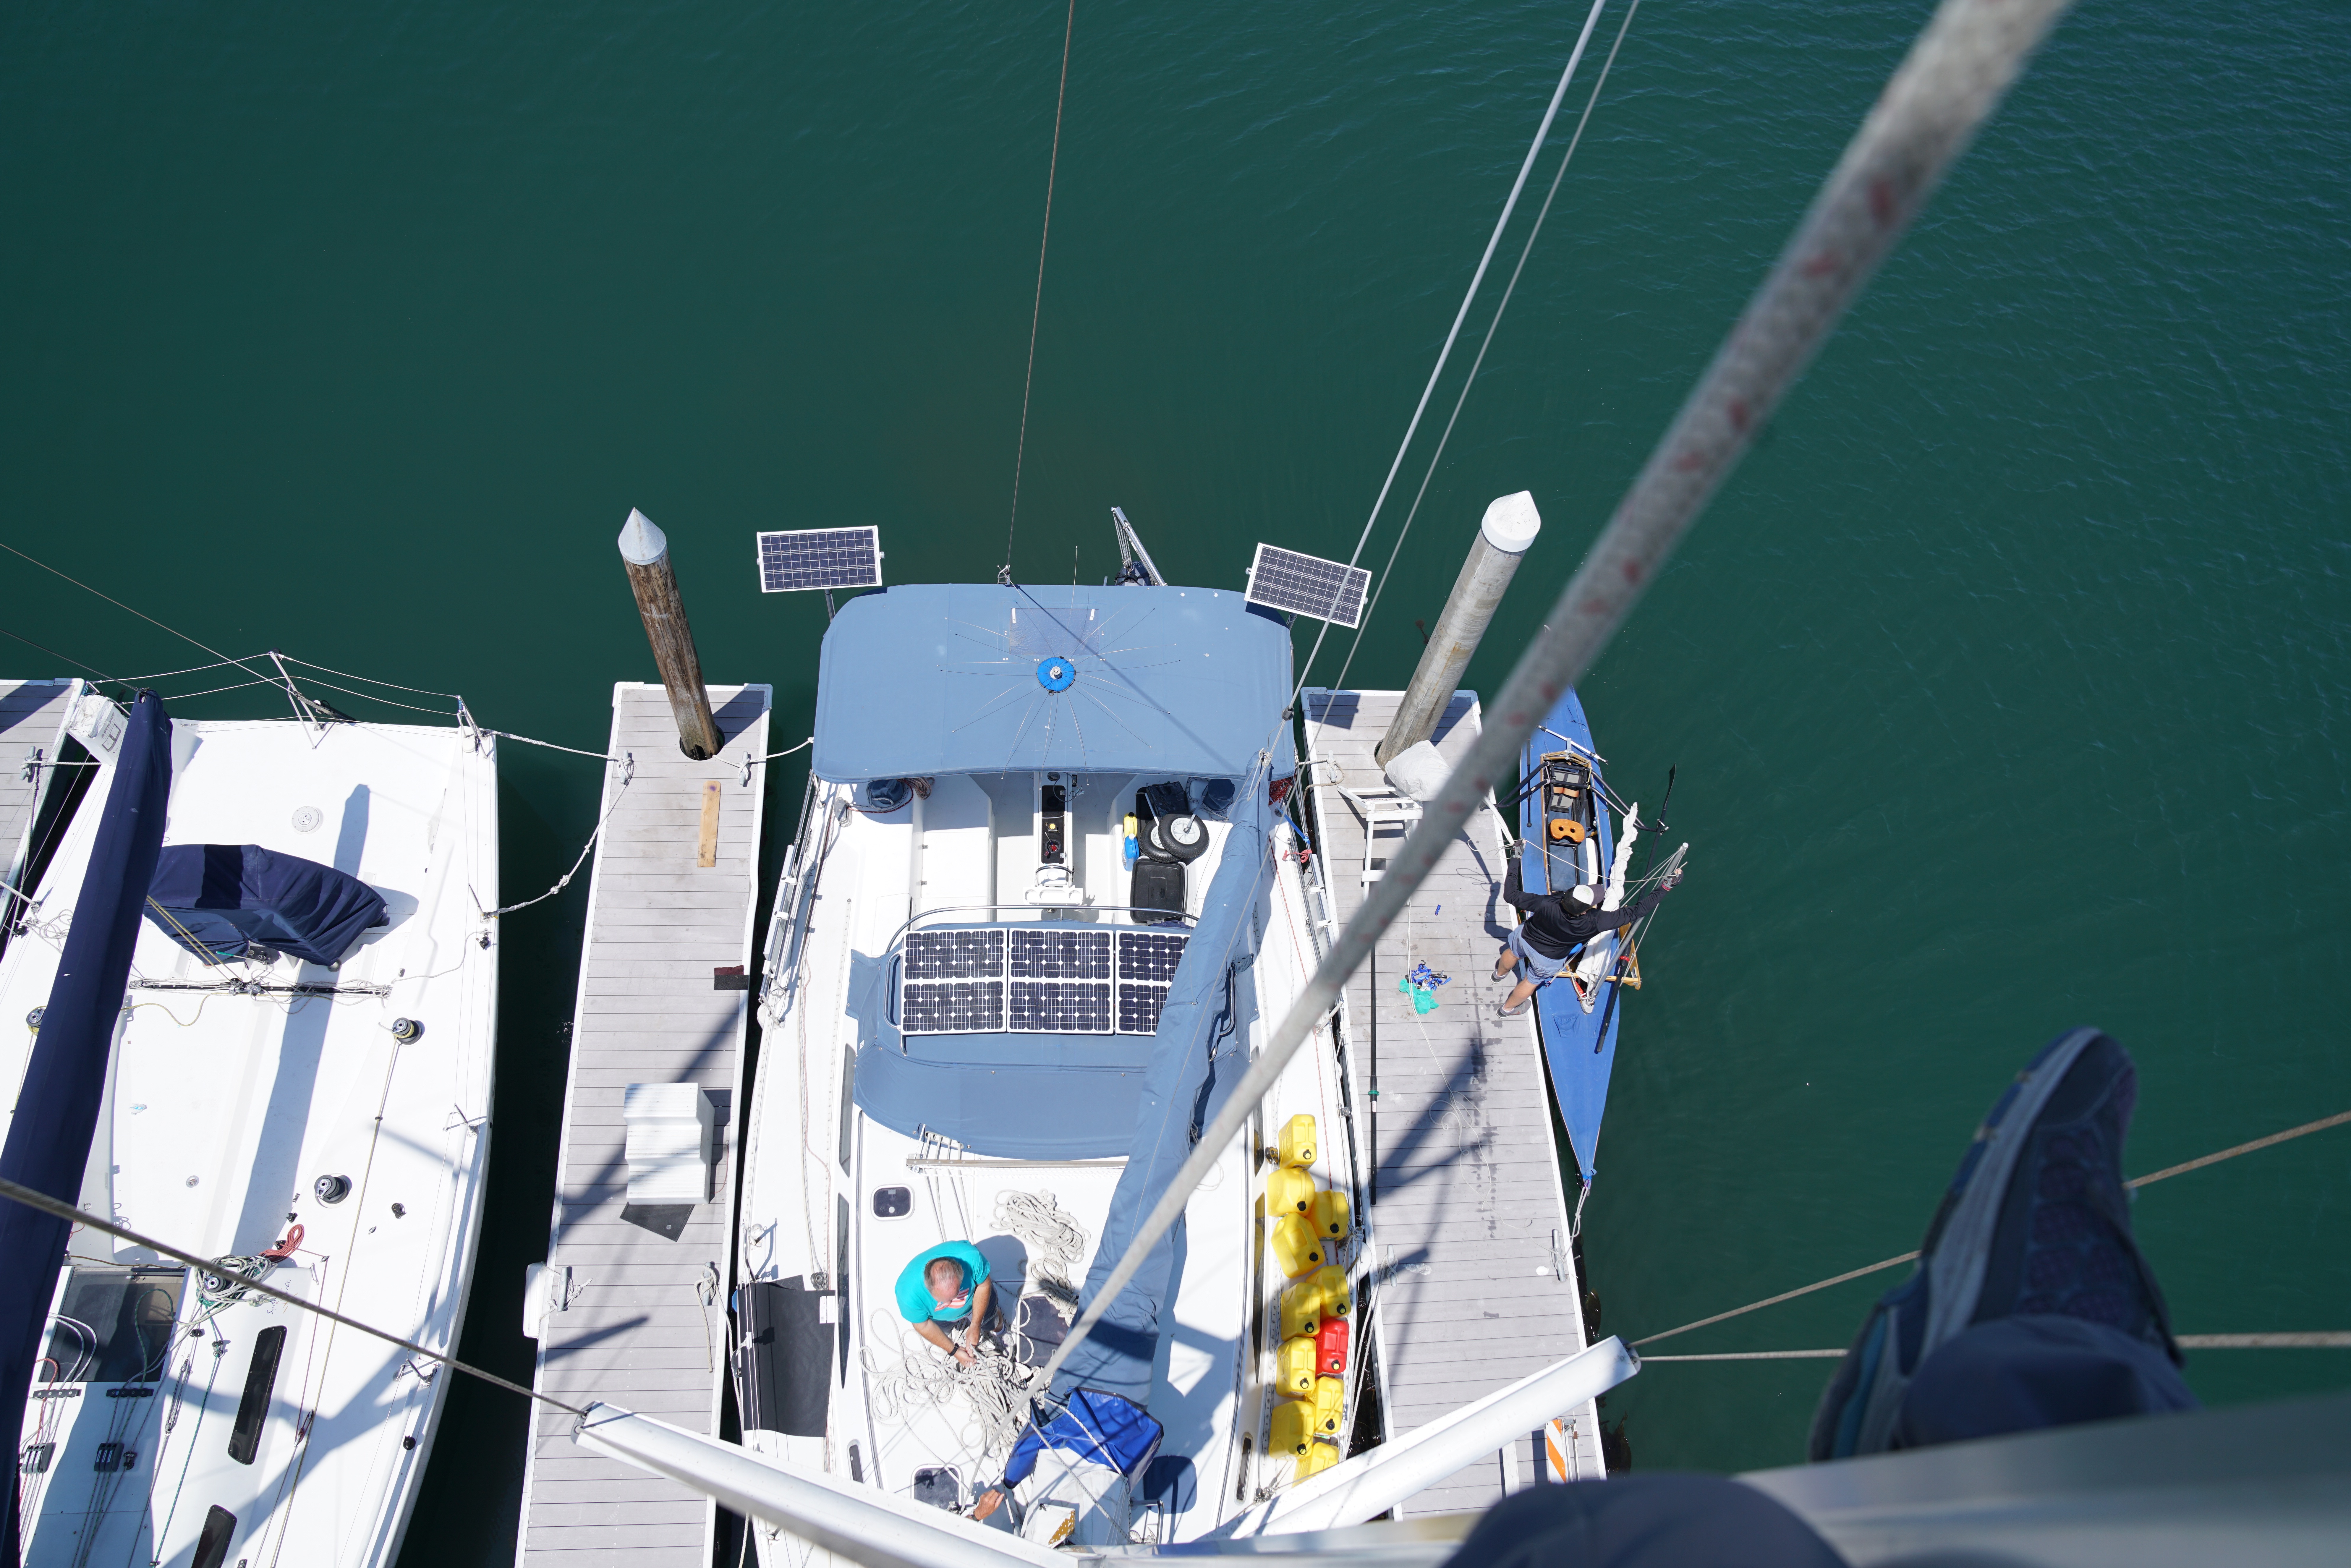 Looking down at Aldabra from halfway up the mast